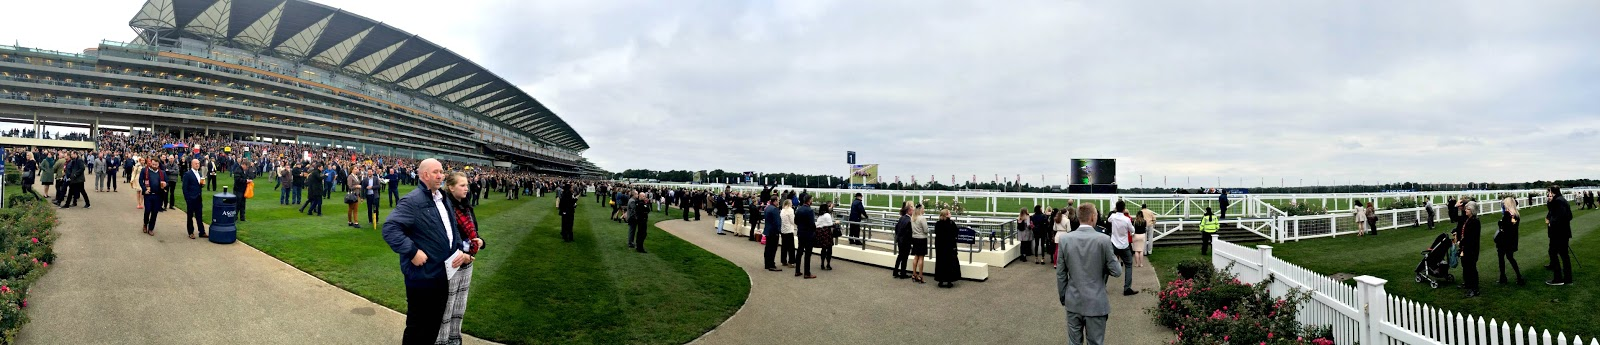 Racecourse at Ascot